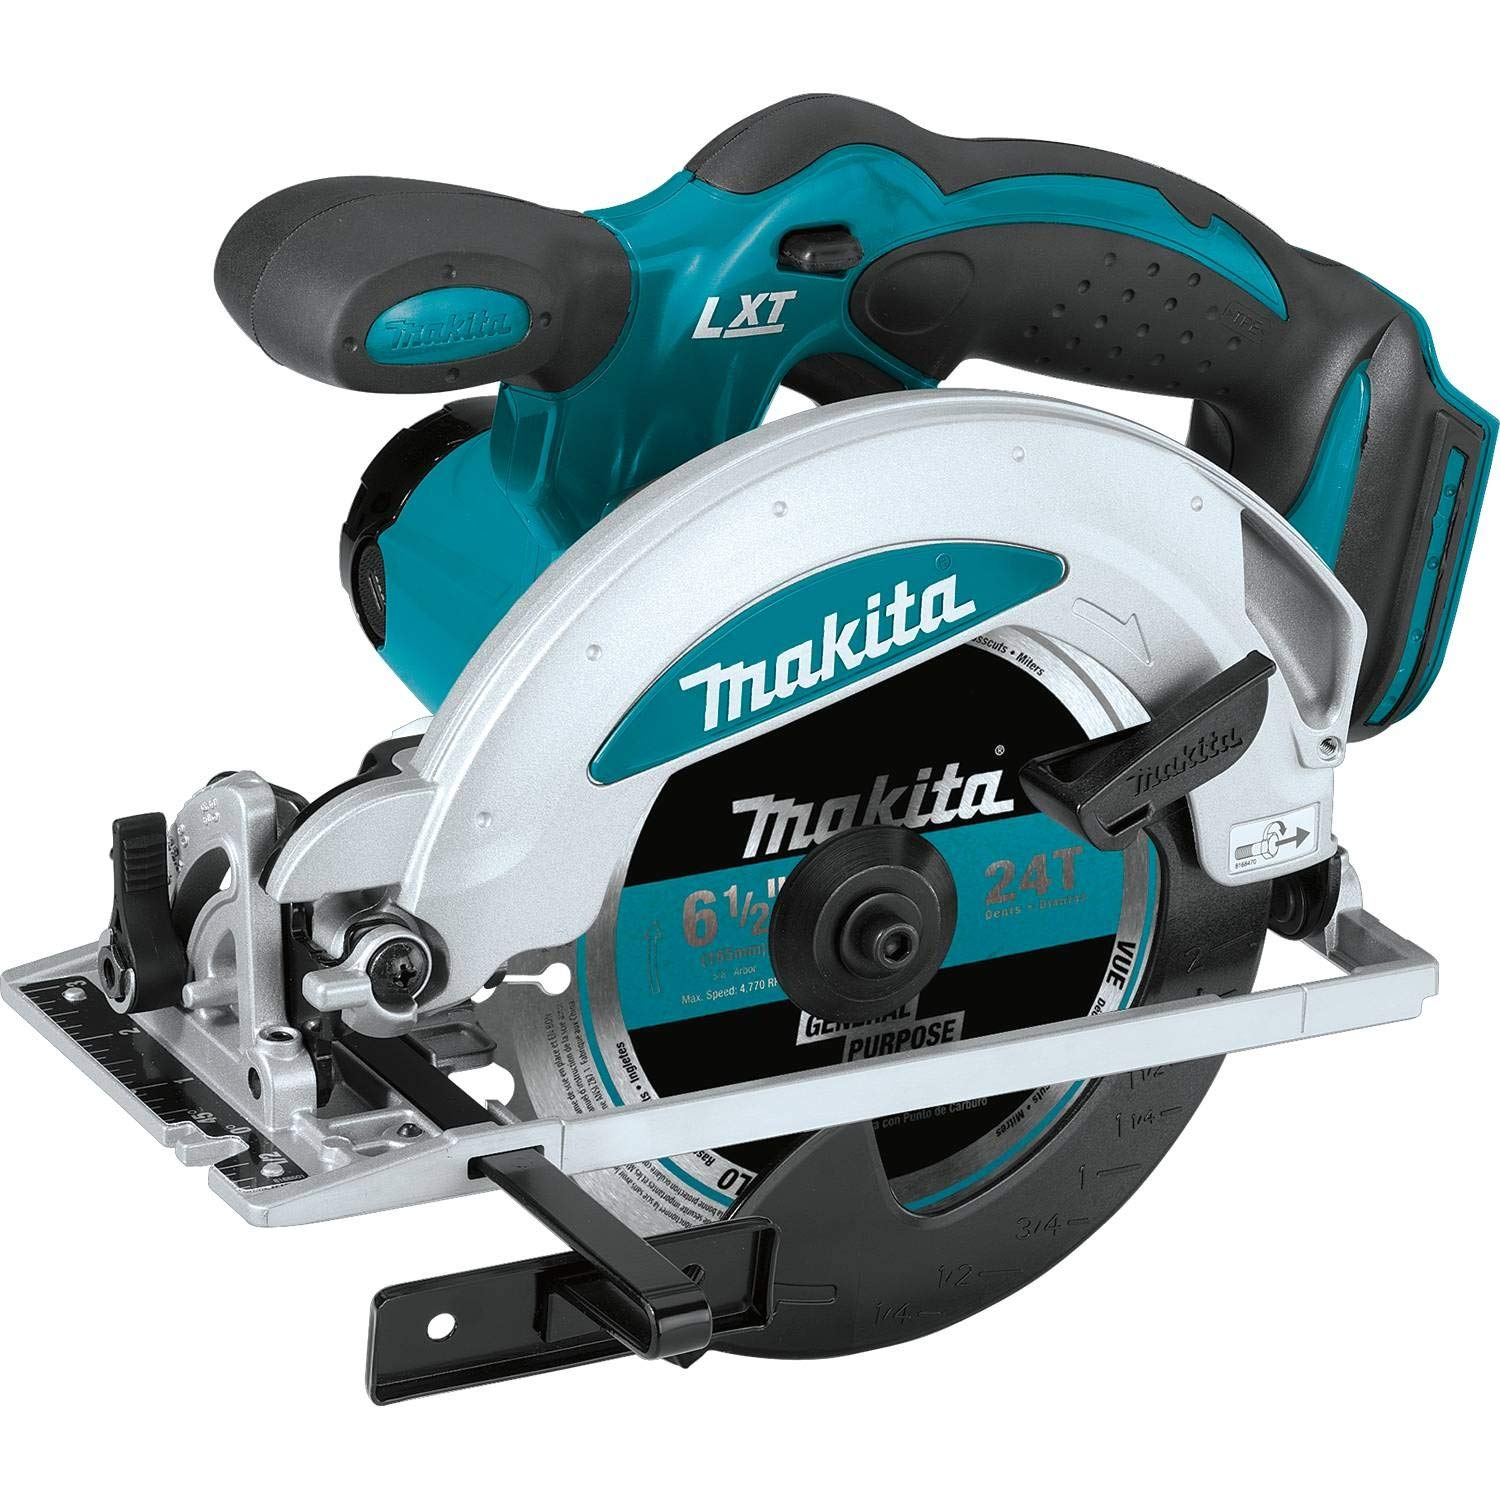 Makita XSS01Z18V LXT Lithium-Ion Cordless 6-1 2 Circular Saw, Tool Only